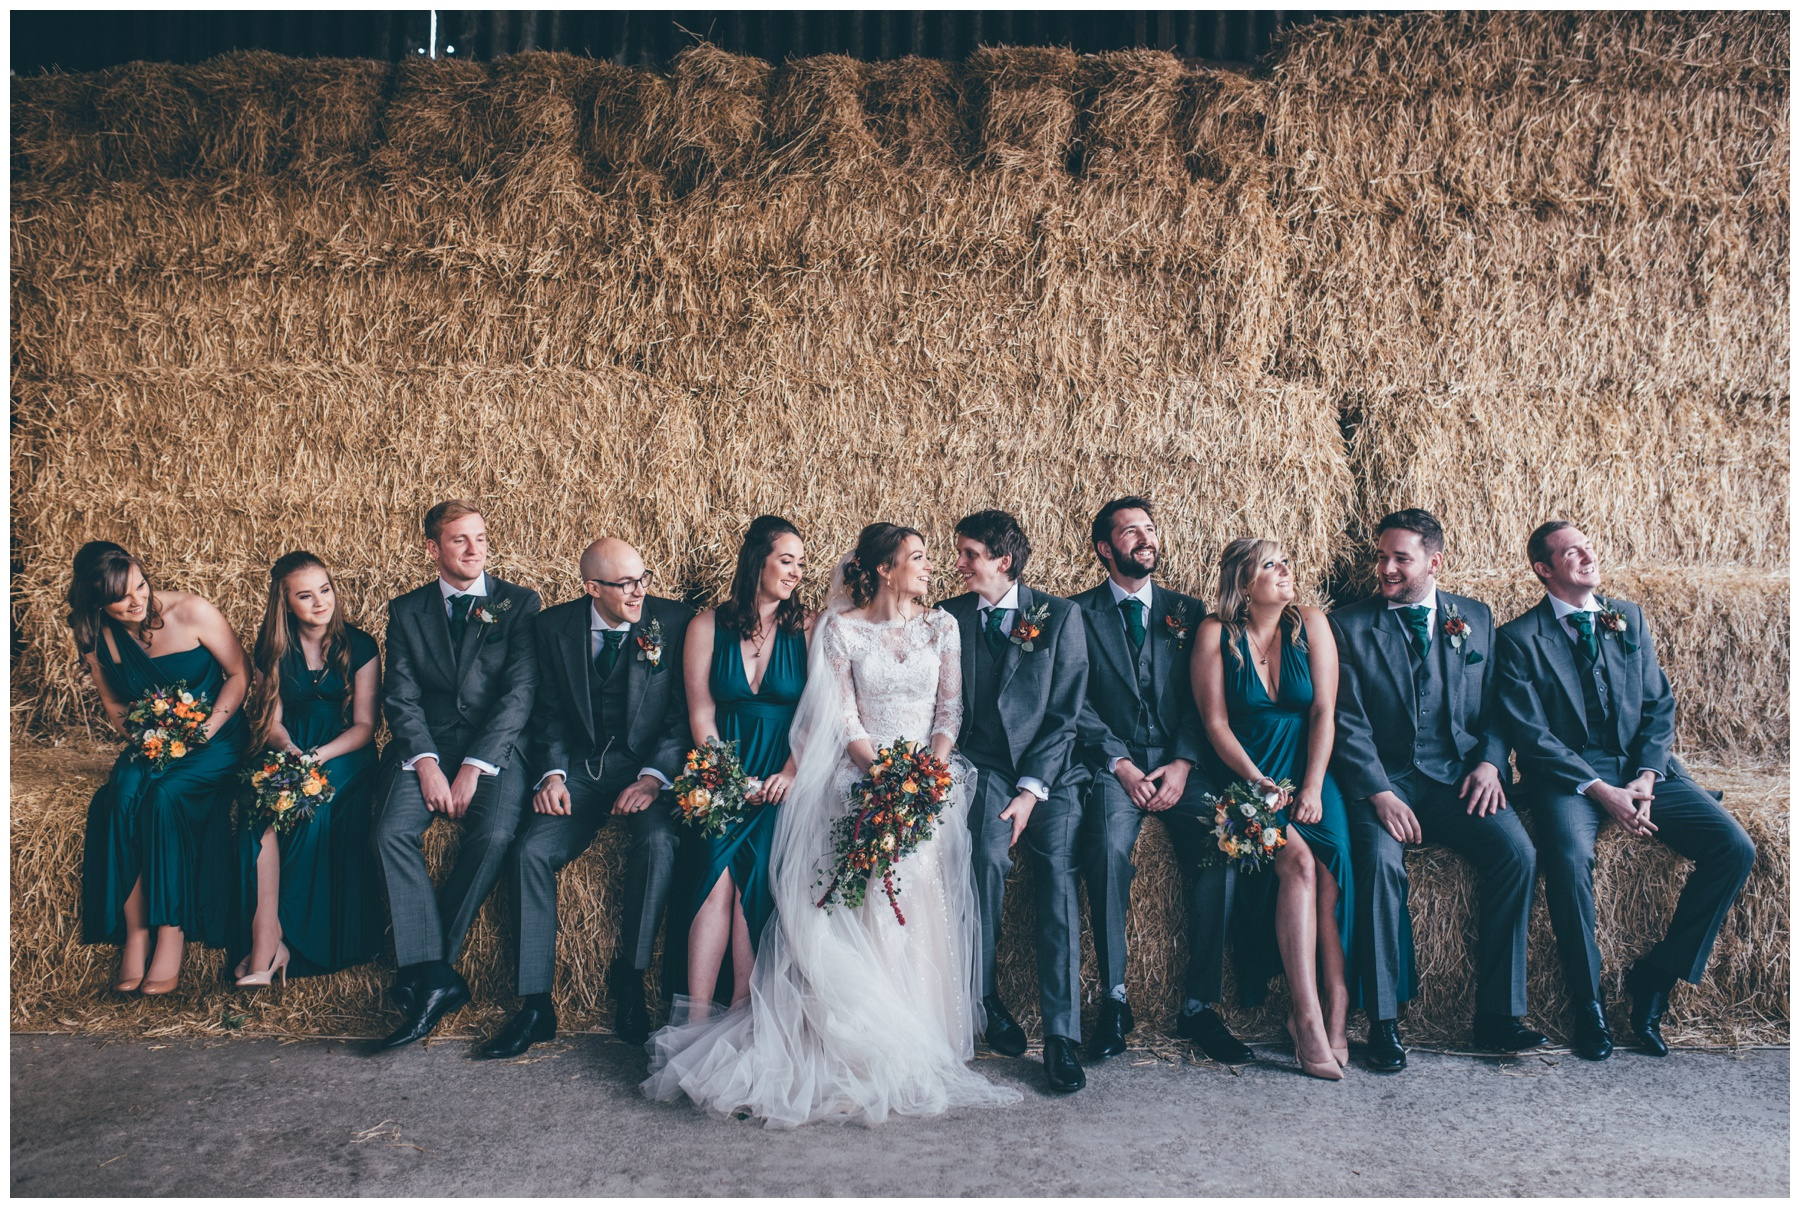 Bridal party all on hay bales together at Owen House wedding barn, new wedding venue in Cheshire.